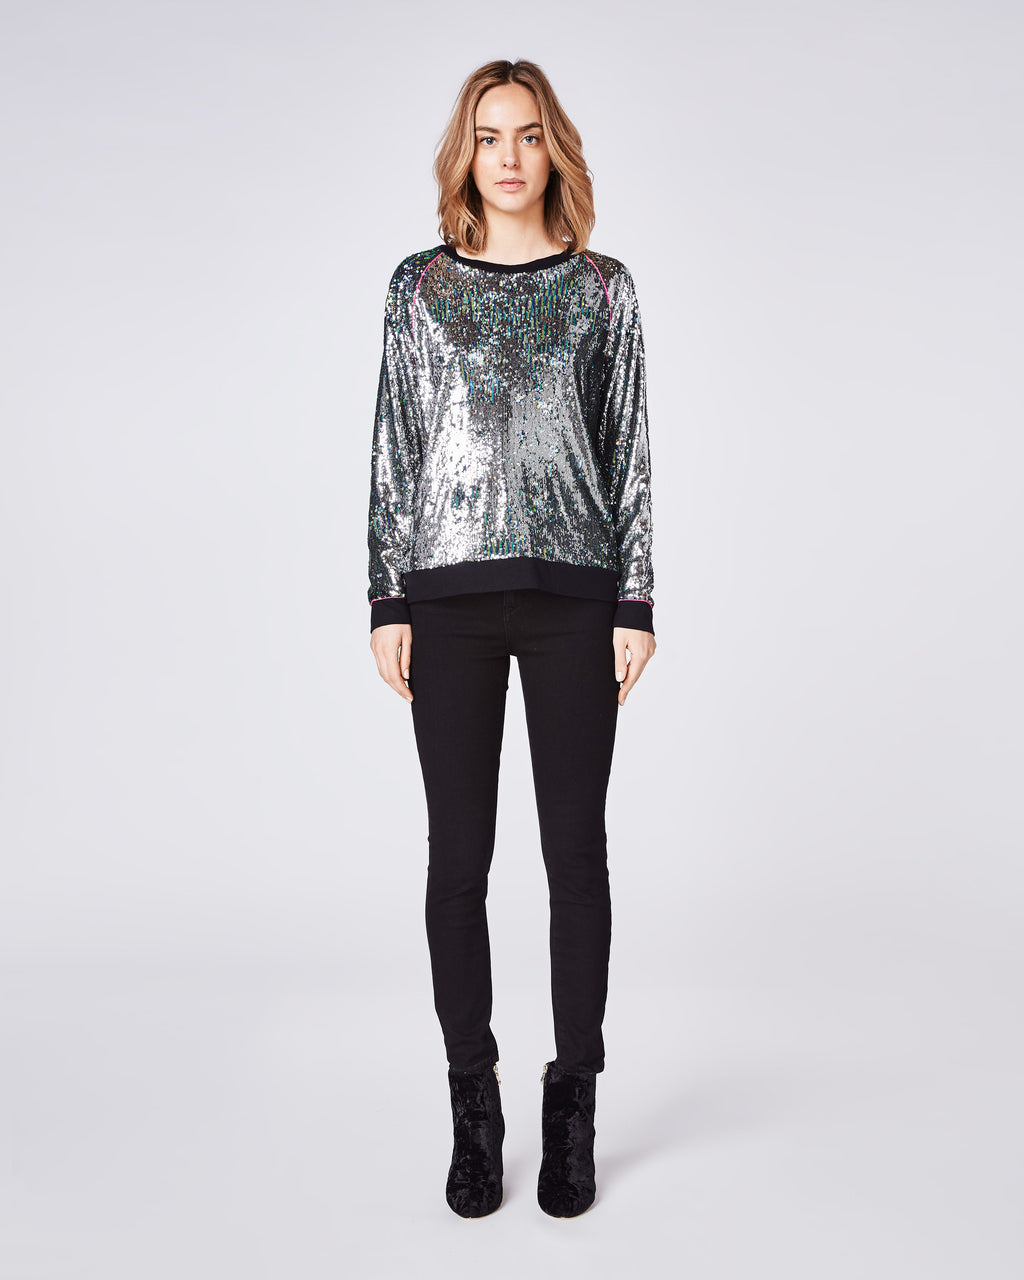 BF10355 - MERMAID SEQUIN SWEATSHIRT With PIPING - tops - shirts - Did someone say party? This crew cut sequin sweater has a relaxed fit making it dressy, but comfortable. It features pink piping detail at the sleeves for an extra detail.